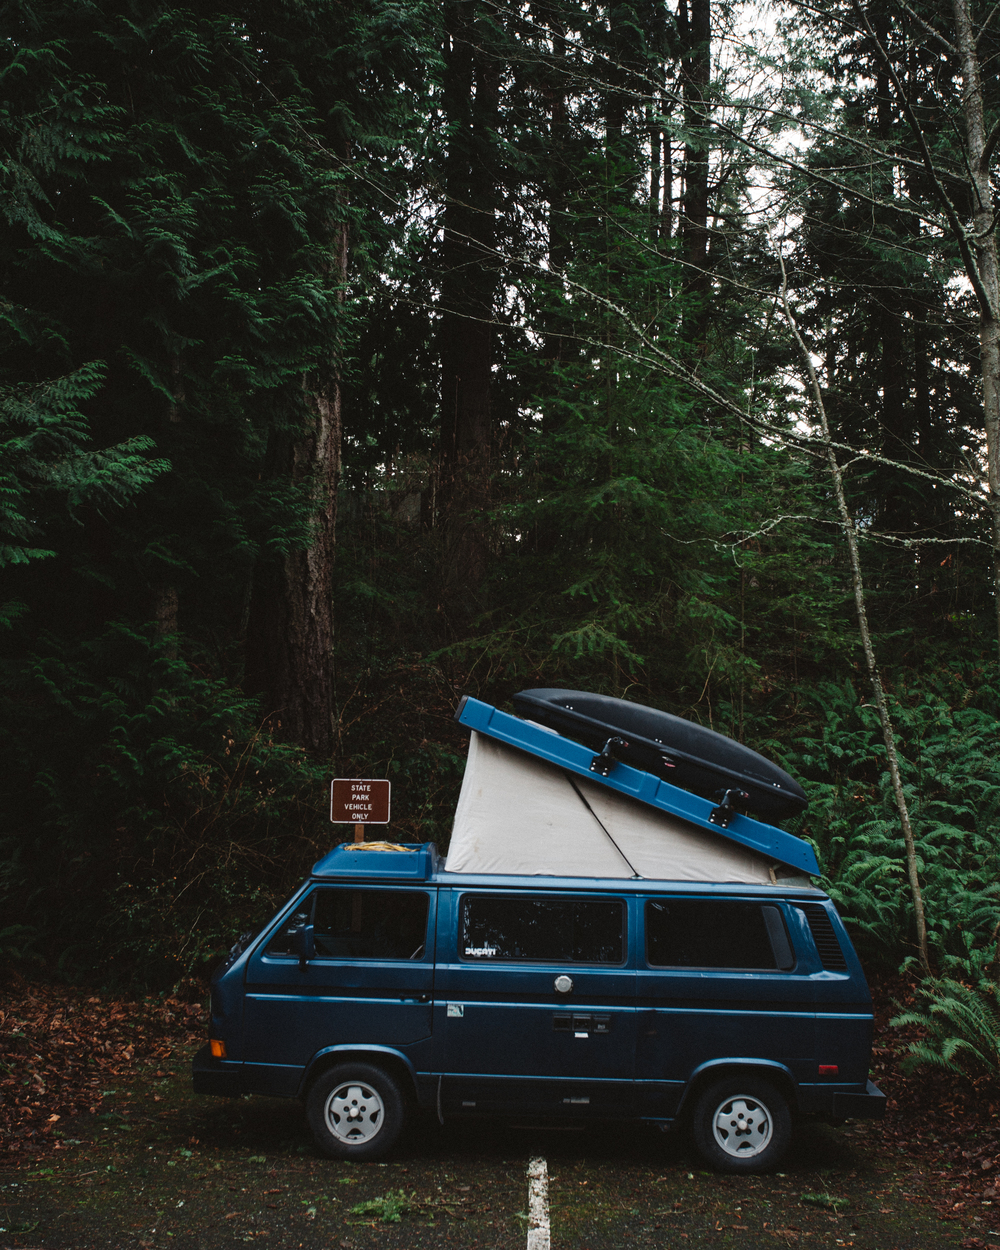 Chad's Westfalia.